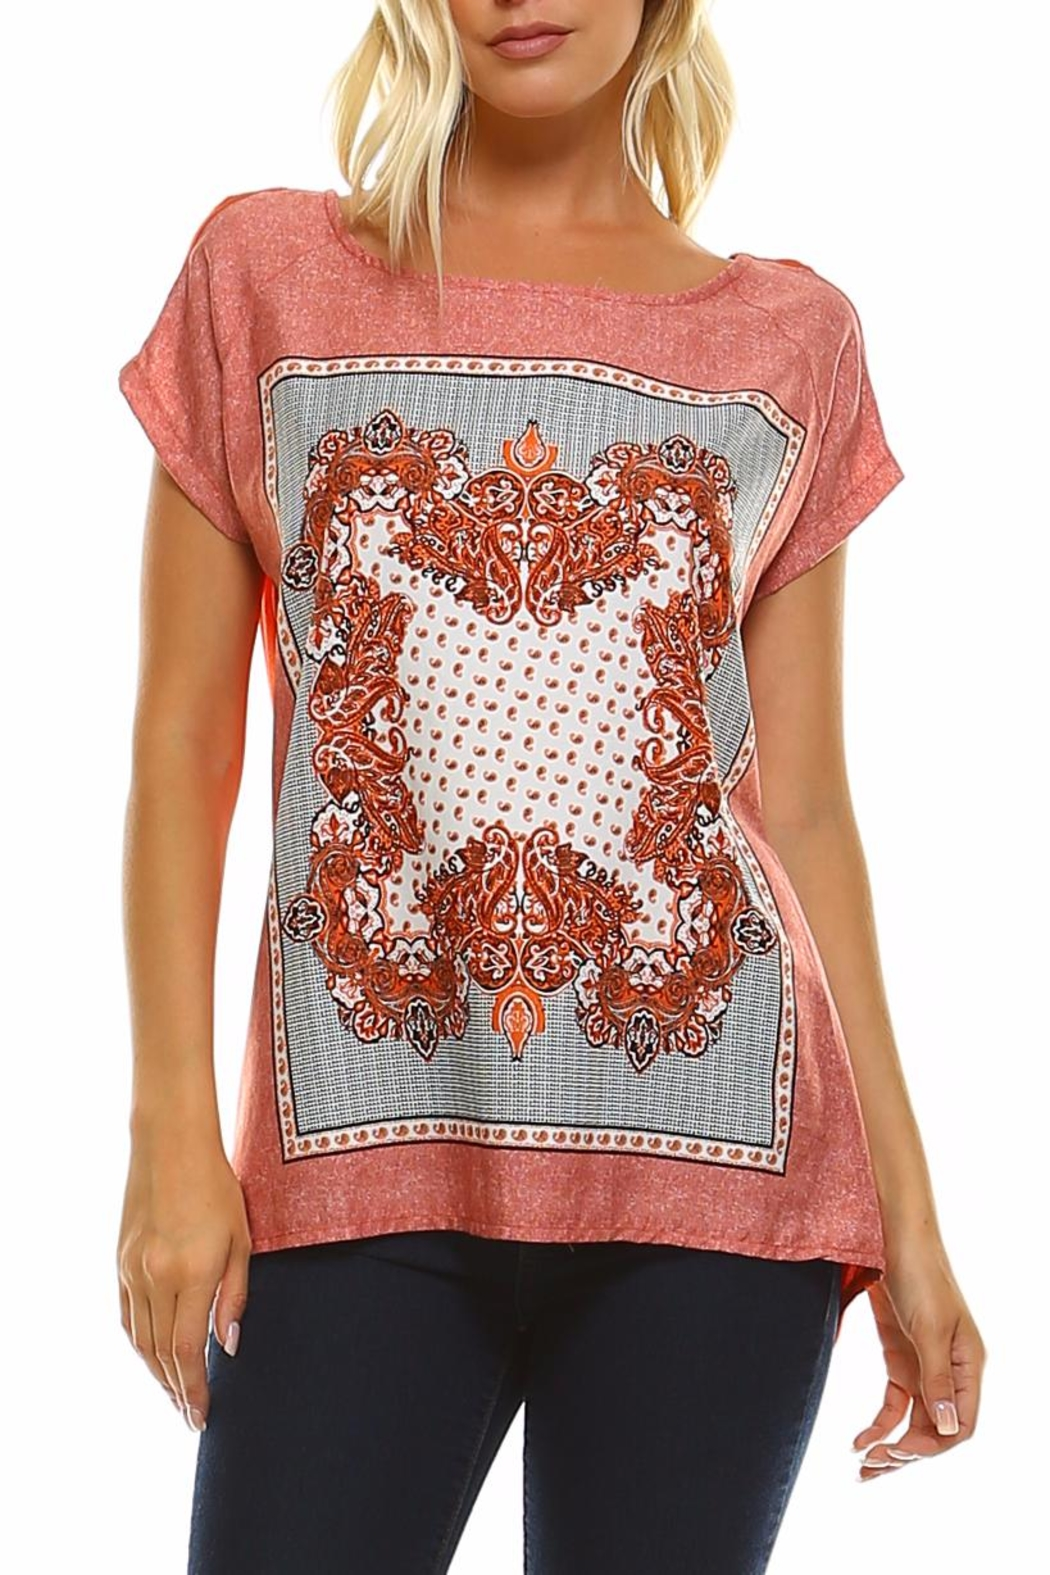 Maison Coupe Printed Woven Top - Main Image